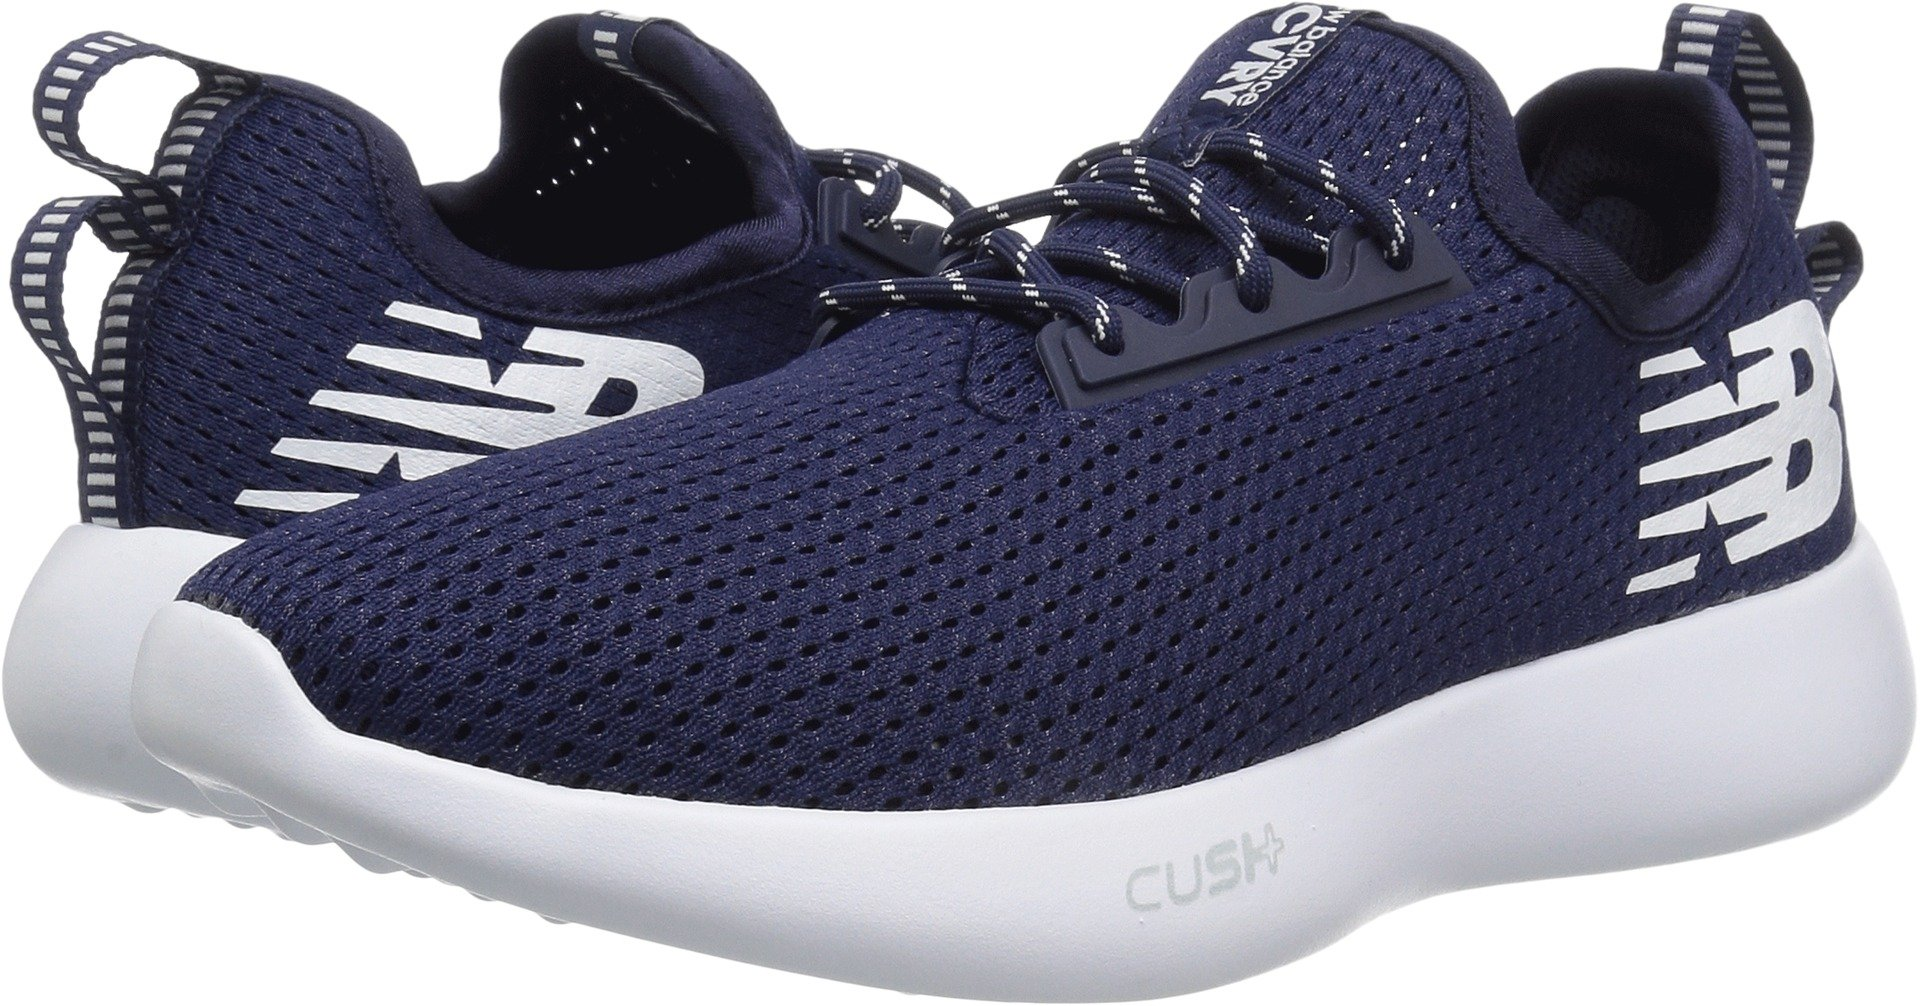 New Balance Men's NB Recovery v1 Transition Lacrosse Shoe, Navy, 11 D US by New Balance